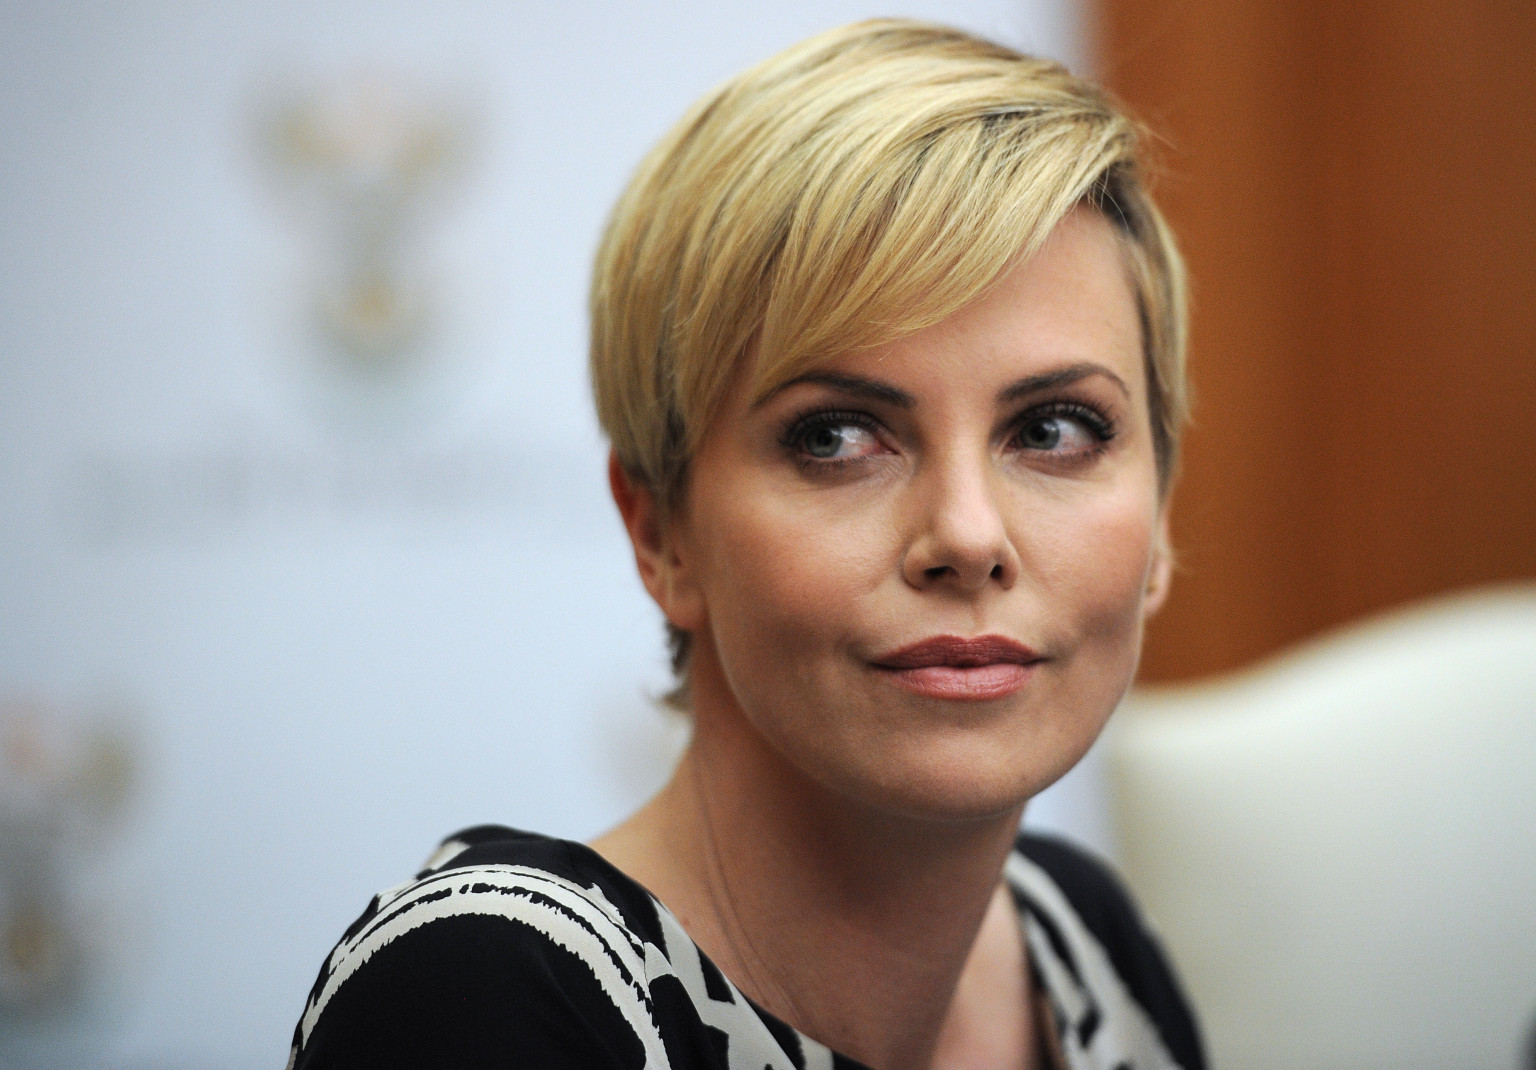 South African-born Hollywood actress and UN Messenger of Peace Charlize Theron attends a press conference on July 29, 2013, at the Unions Building in Pretoria. Theron is accompanied by the Executive Director of UNAIDS Michel Sidibe to discuss the strides being made in the fight against HIV and AIDS and how collaboration can assist mitigate the pandemic's negative impact on young girls. They will also explore ways to support South Africa's efforts to enable young women and girls to lead healthier HIV and AIDS-free lives. AFP PHOTO / STEPHANE DE SAKUTIN (Photo credit should read STEPHANE DE SAKUTIN/AFP/Getty Images)